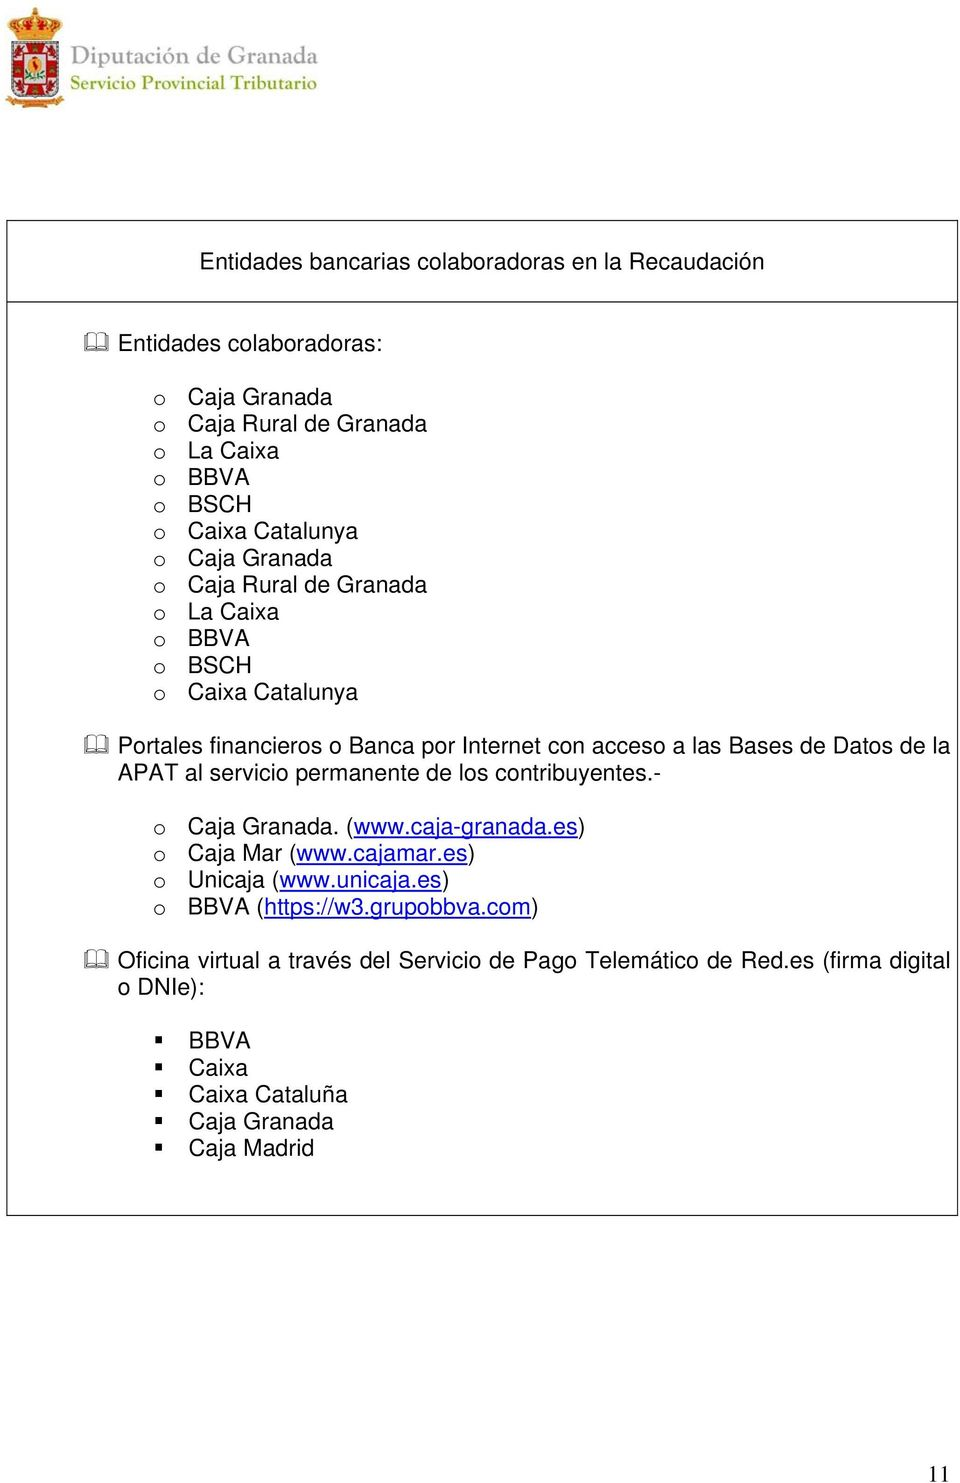 Servicio provincial tributario pdf for Oficina virtual sistema red